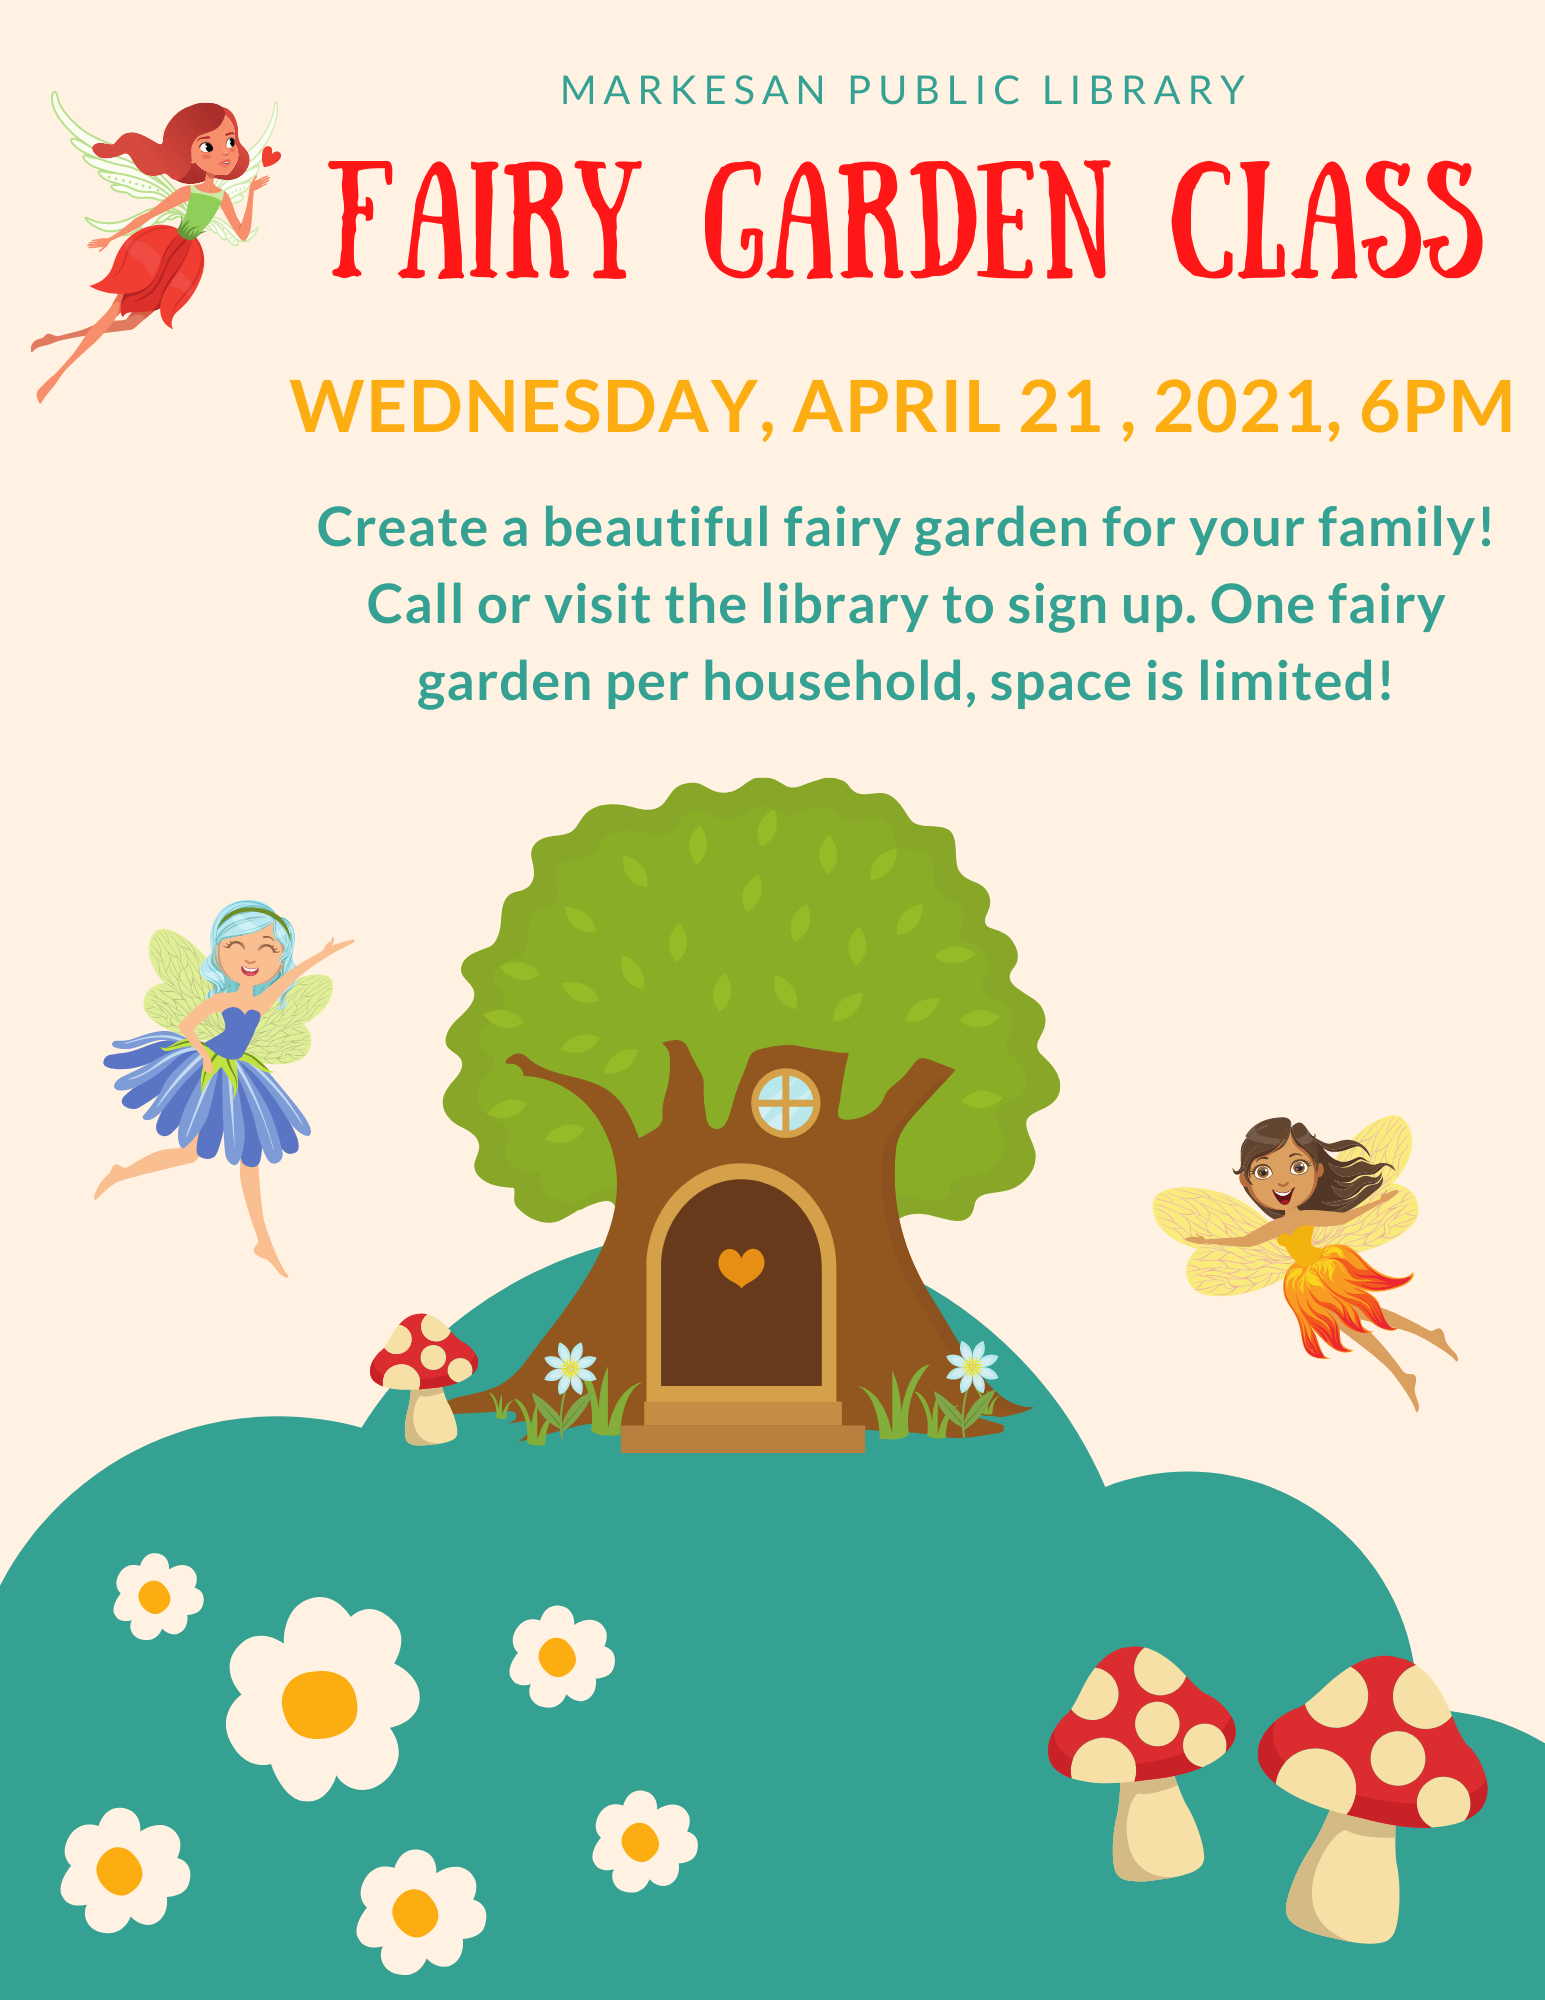 Fairy Garden Class - Wednesday, April 21 @ 6:00 pm (In-Person Event)